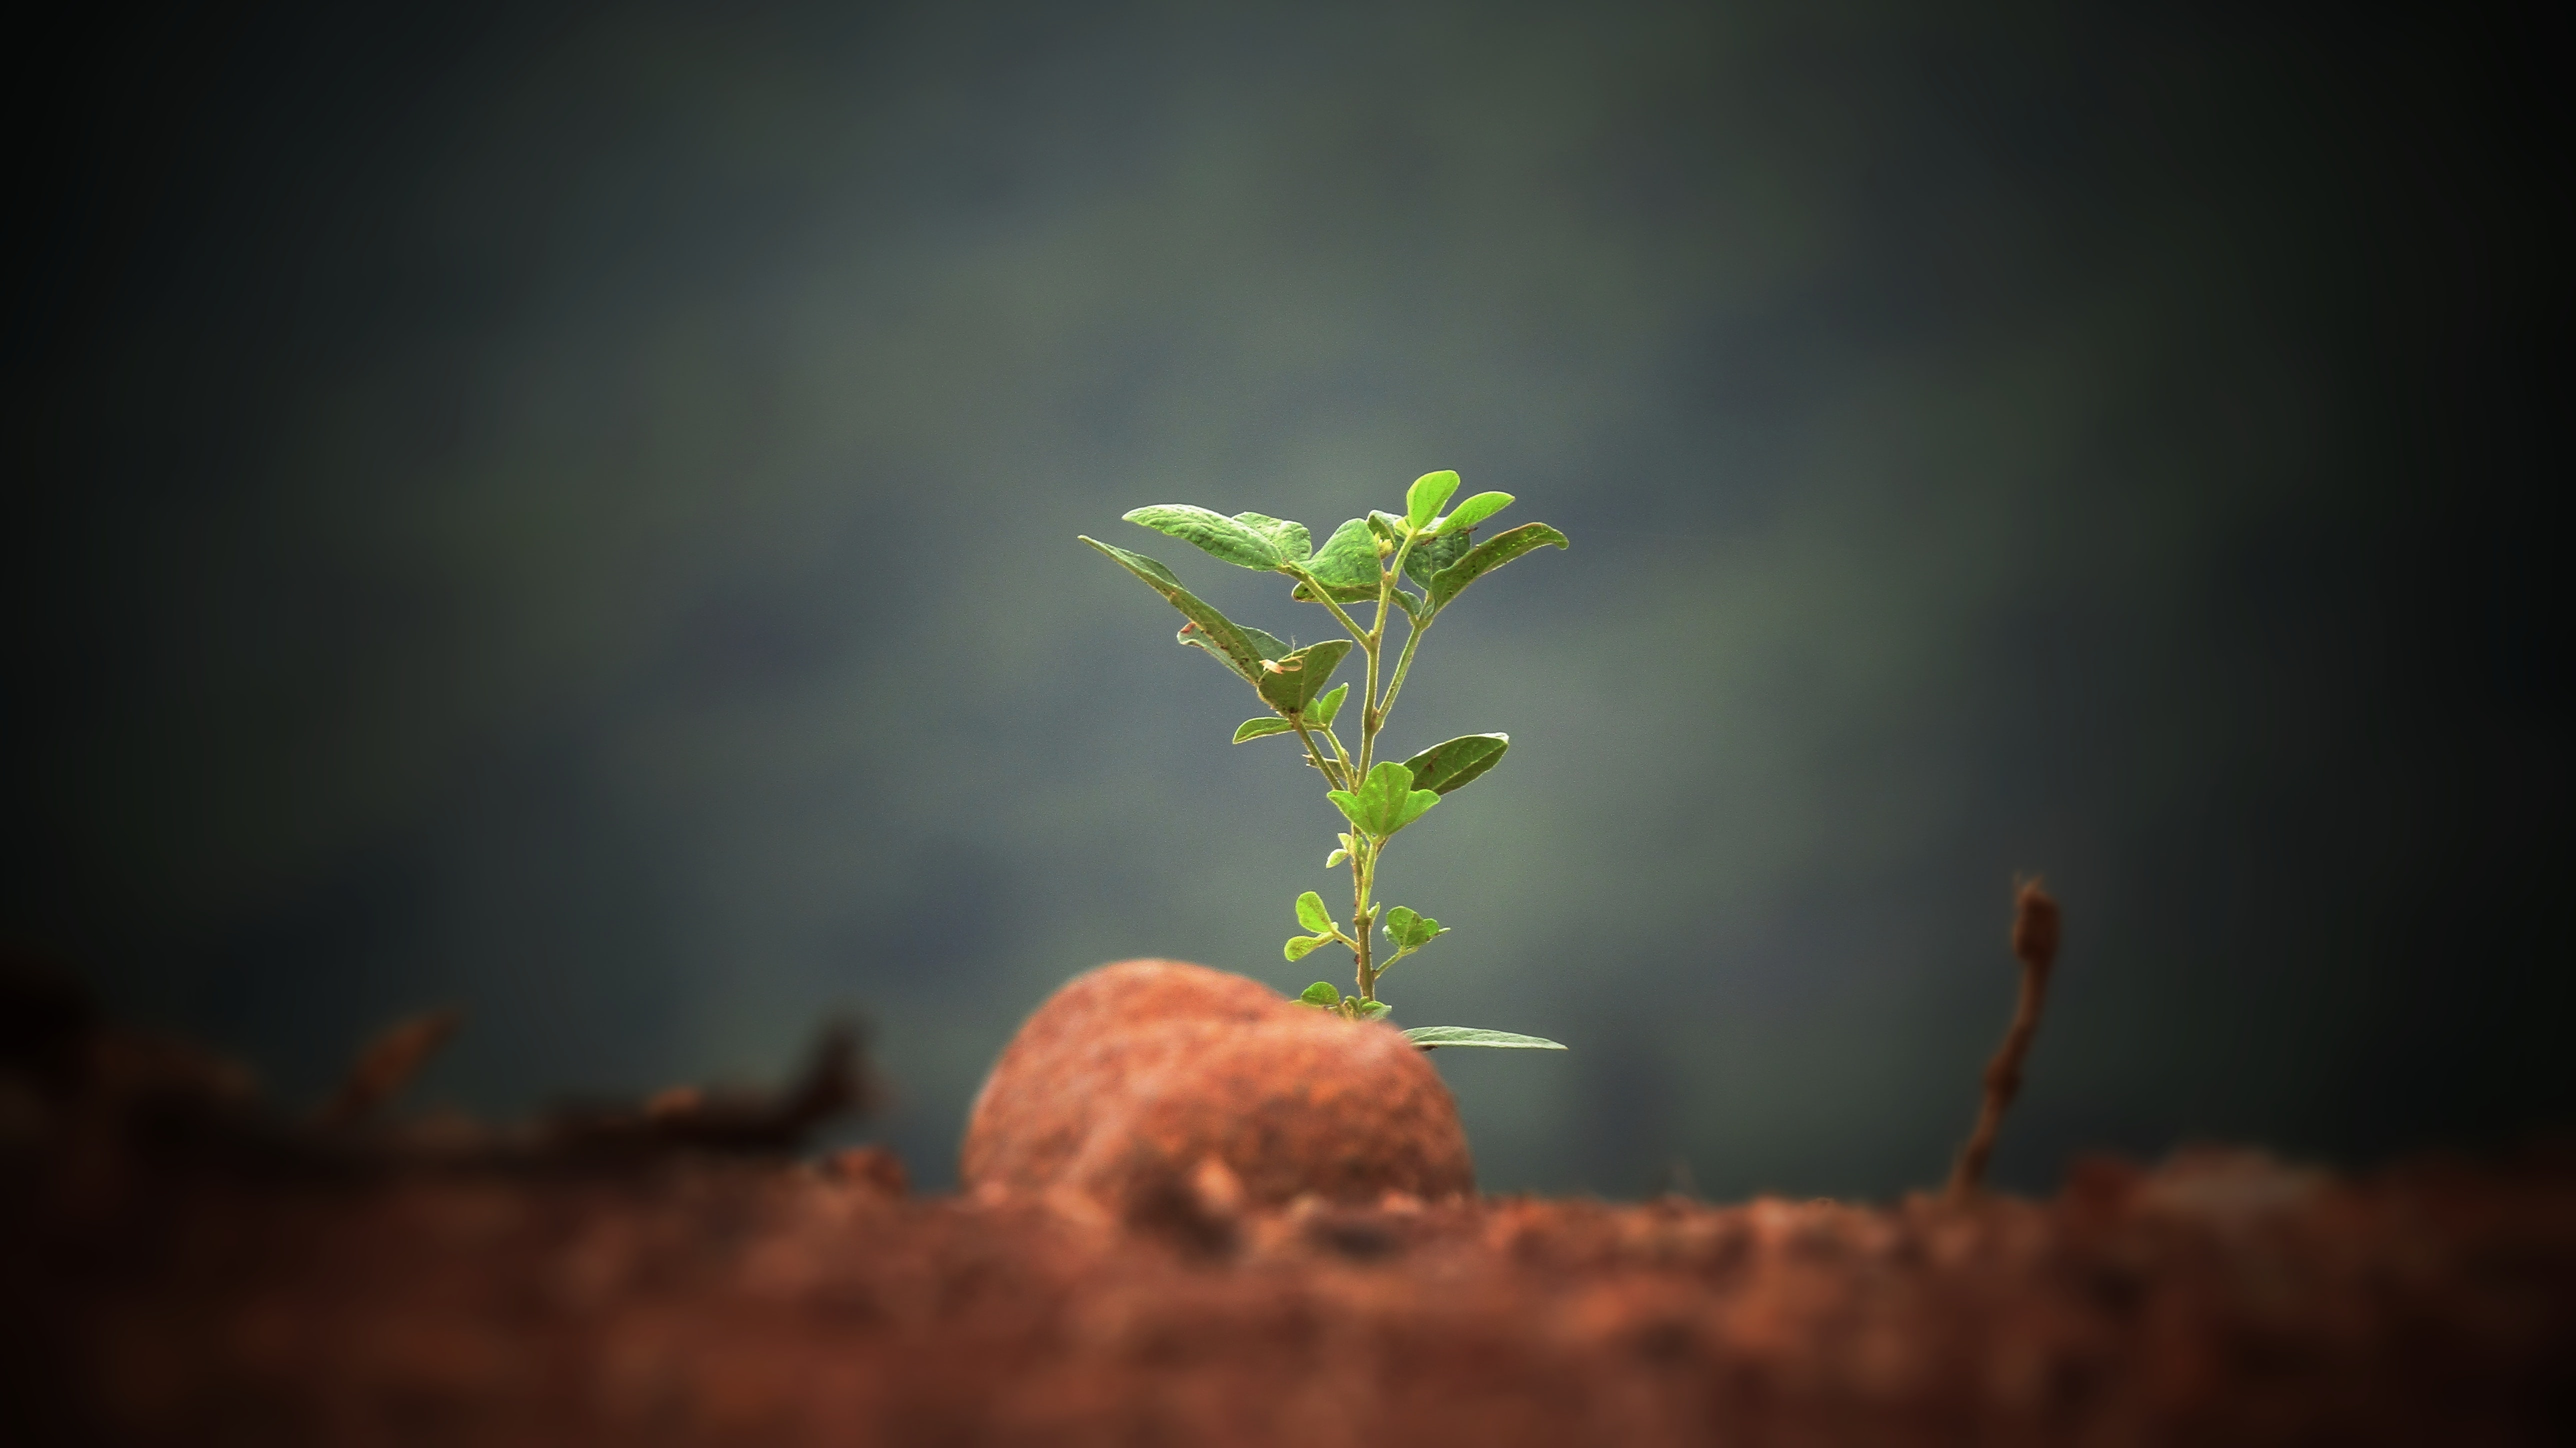 New Sprout Photo by Sushobhan Badhai on Unsplash